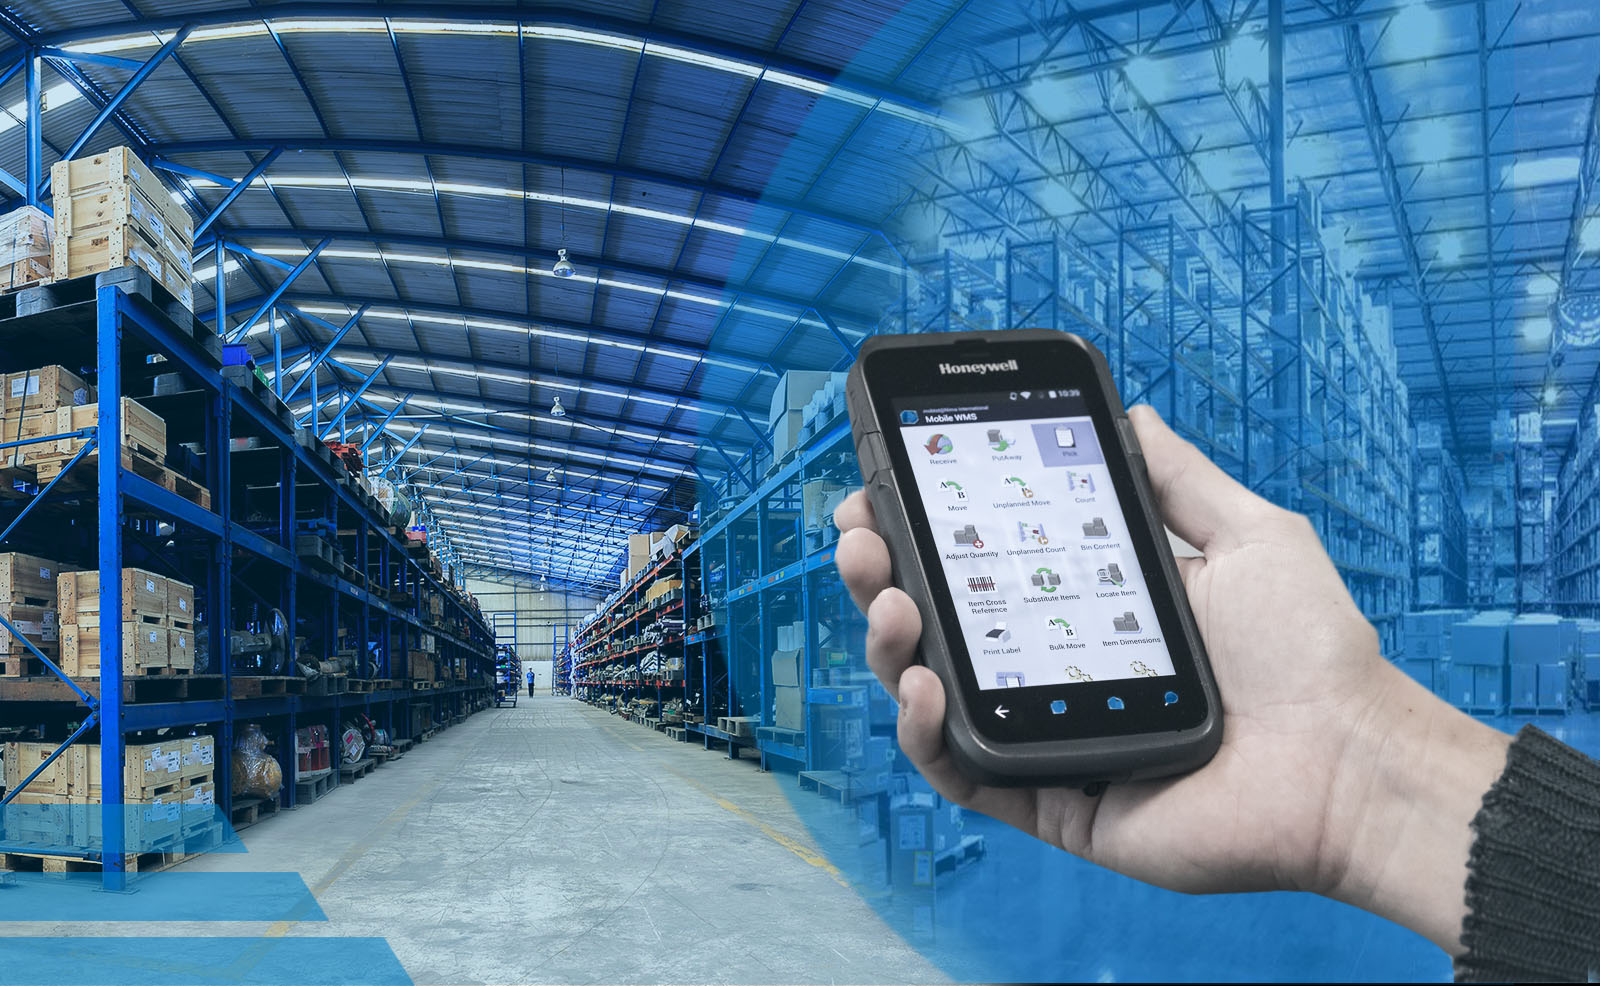 Warehouse with man holding mobile phone with apps